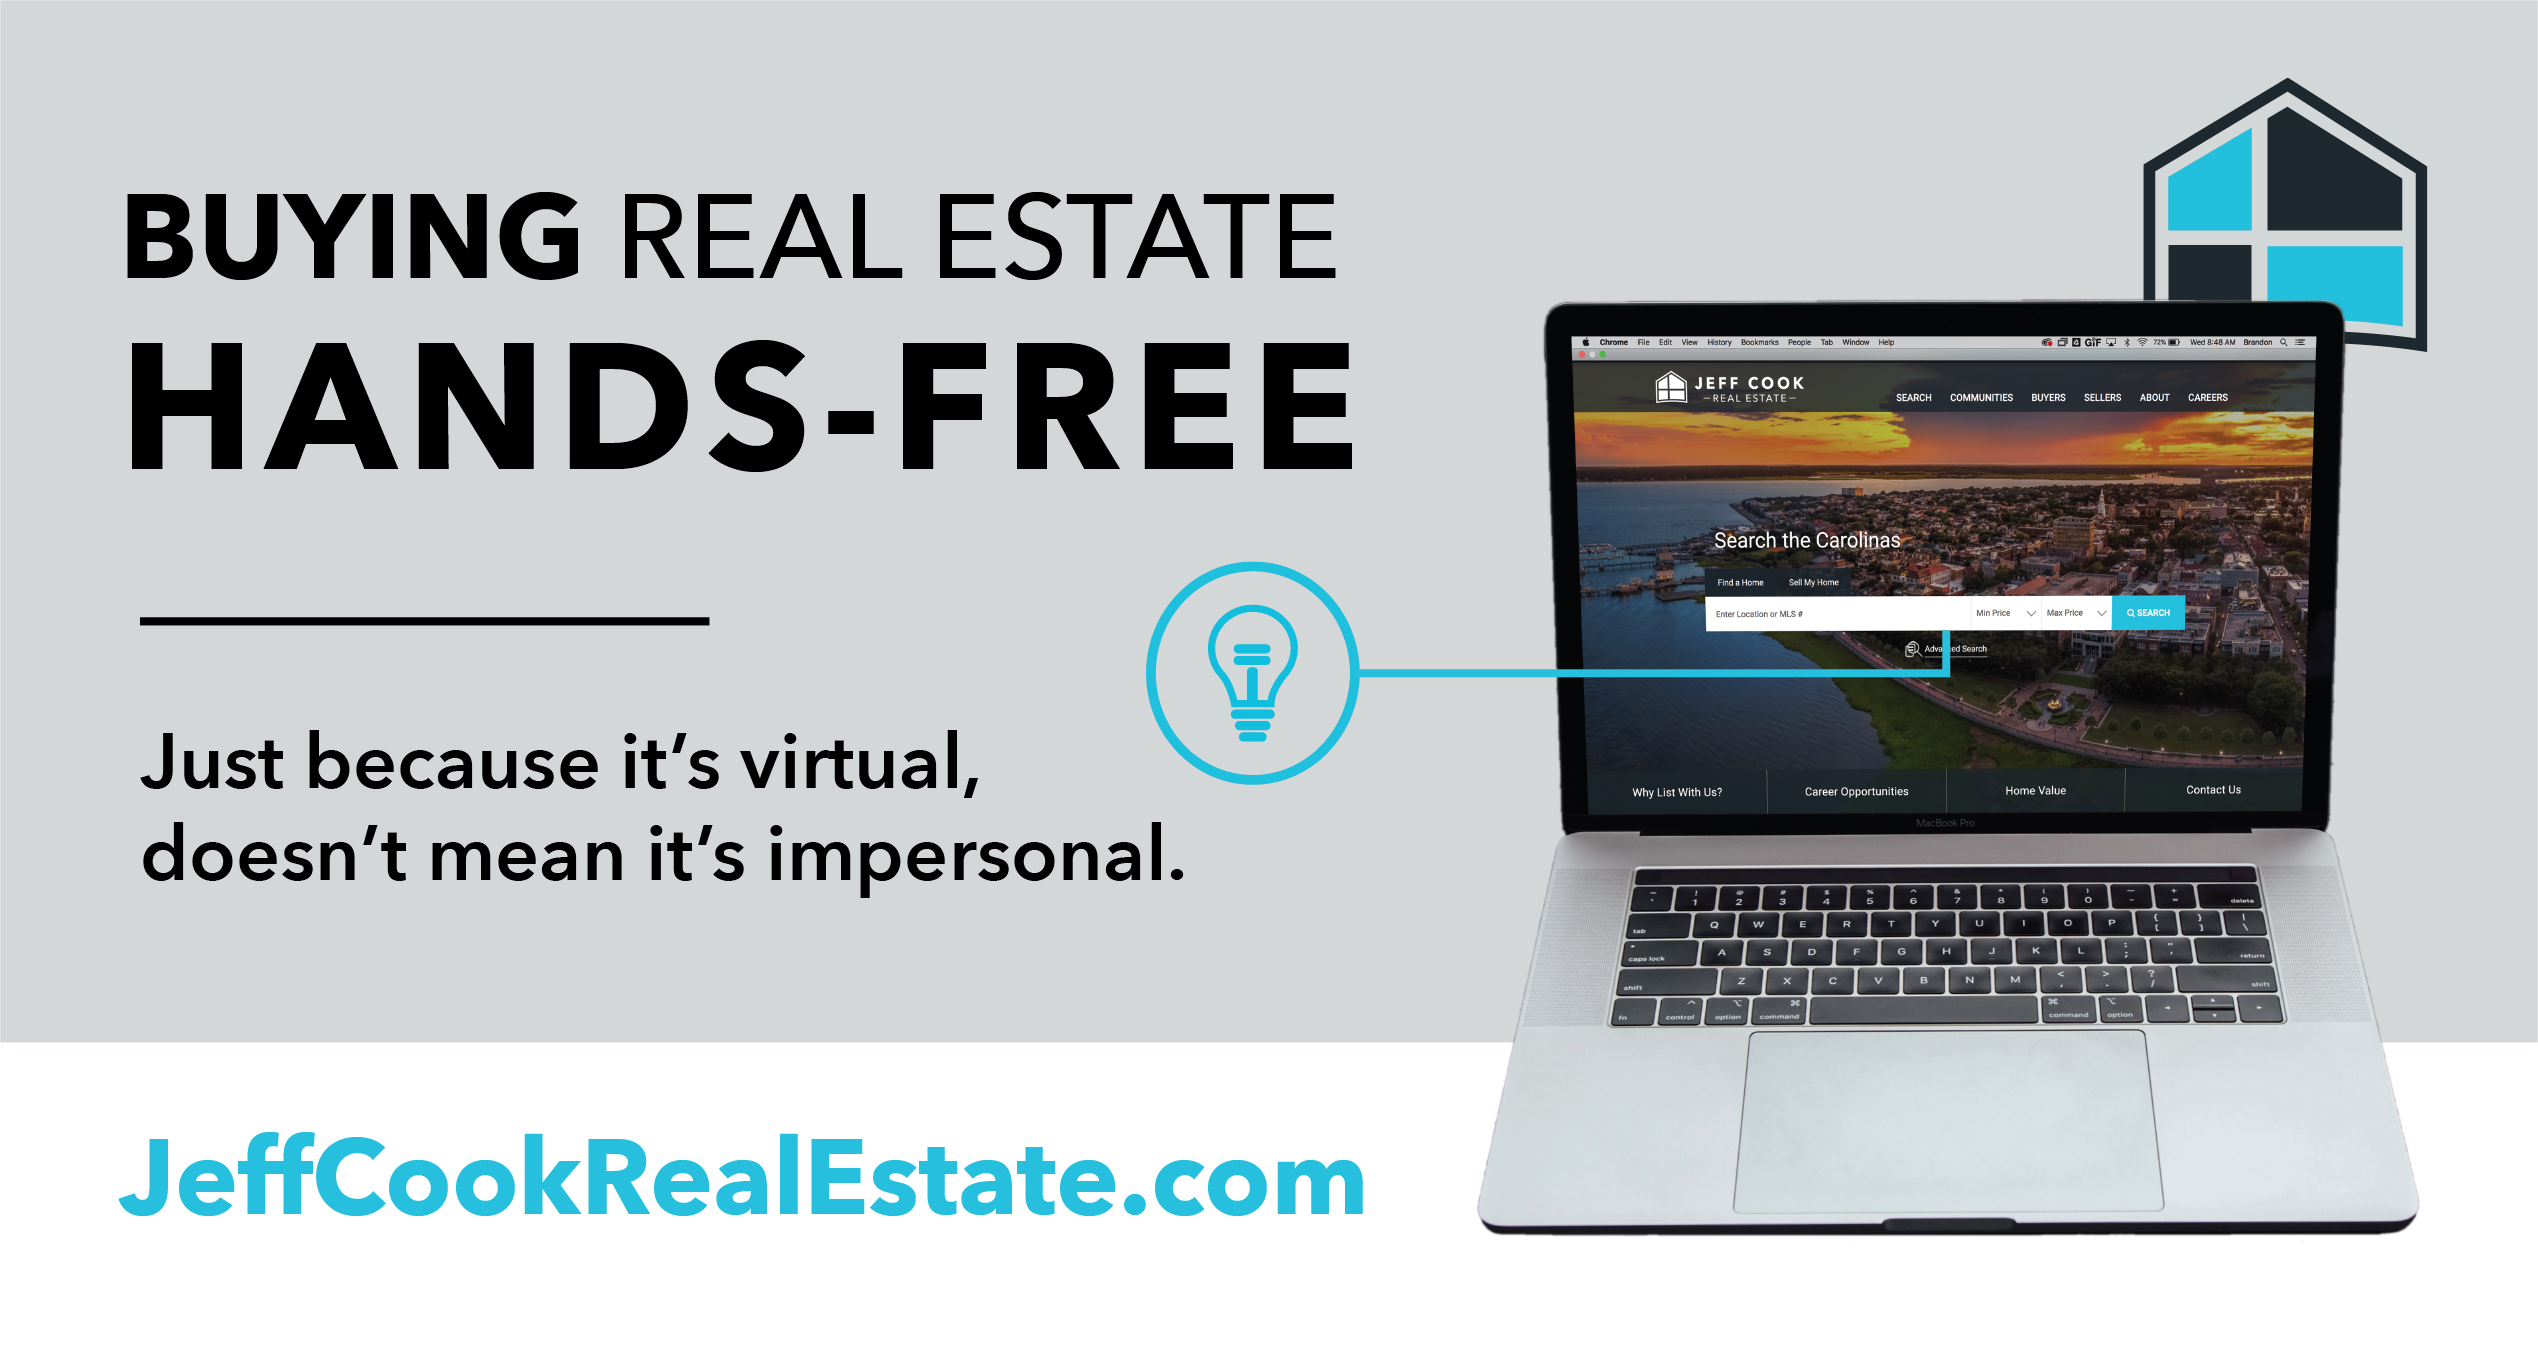 Buying Real Estate Hands-Free